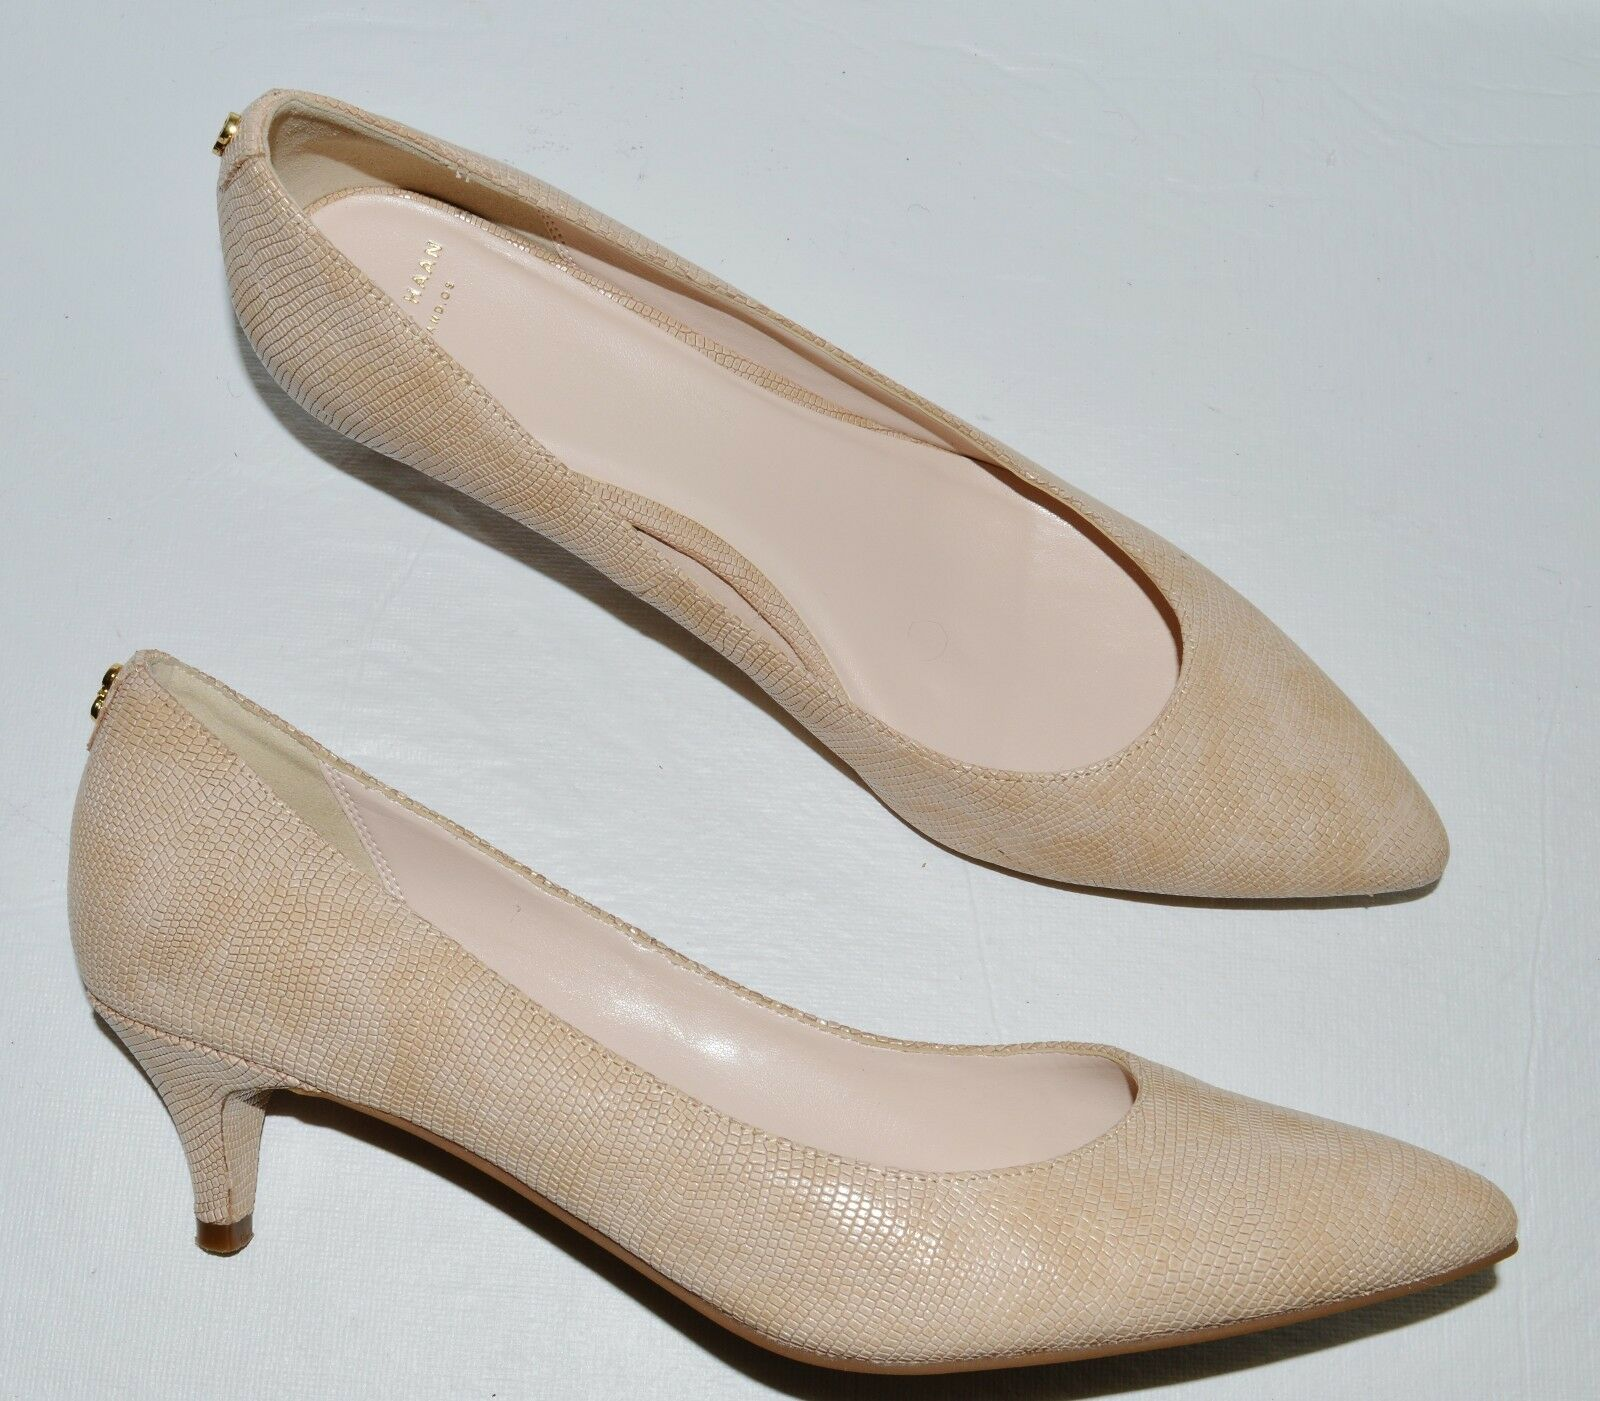 COLE HAAN GRAND OS SZ 9.5 M BEIGE SNAKE PRINT LEATHER PUMPS HEELS DRESS Schuhe